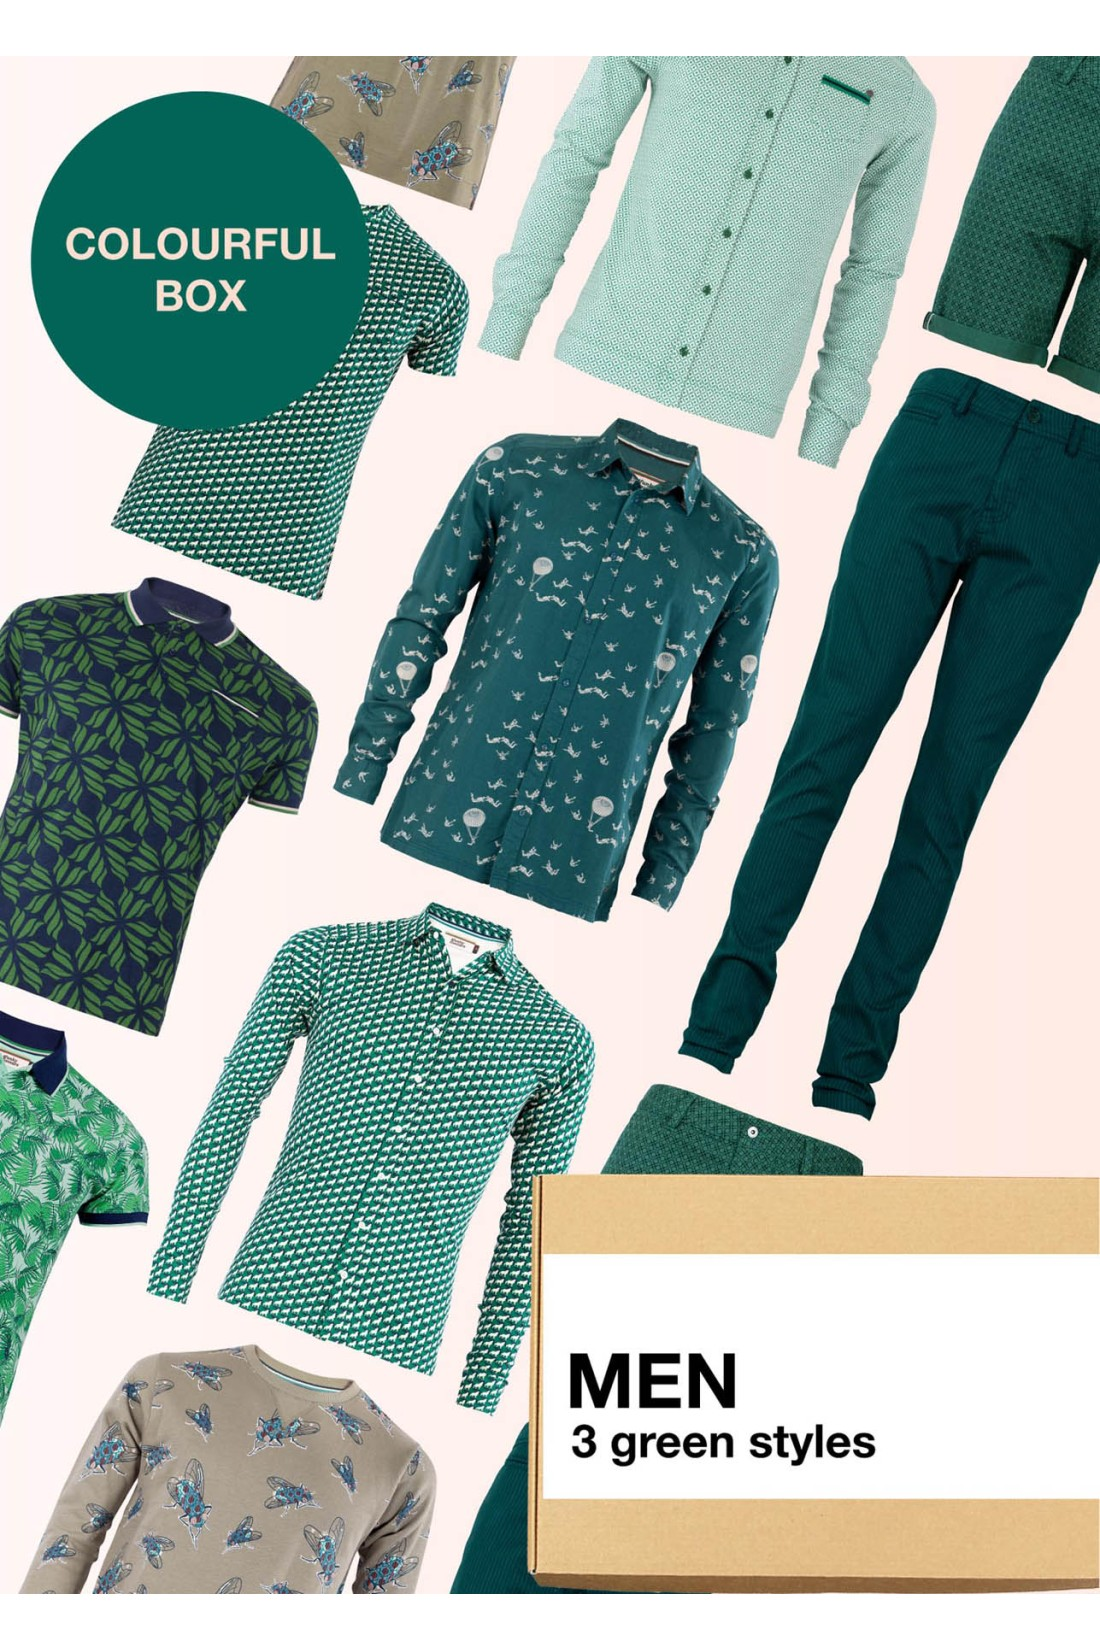 Surprise Box Men - Green Box 3 Styles With Green In It